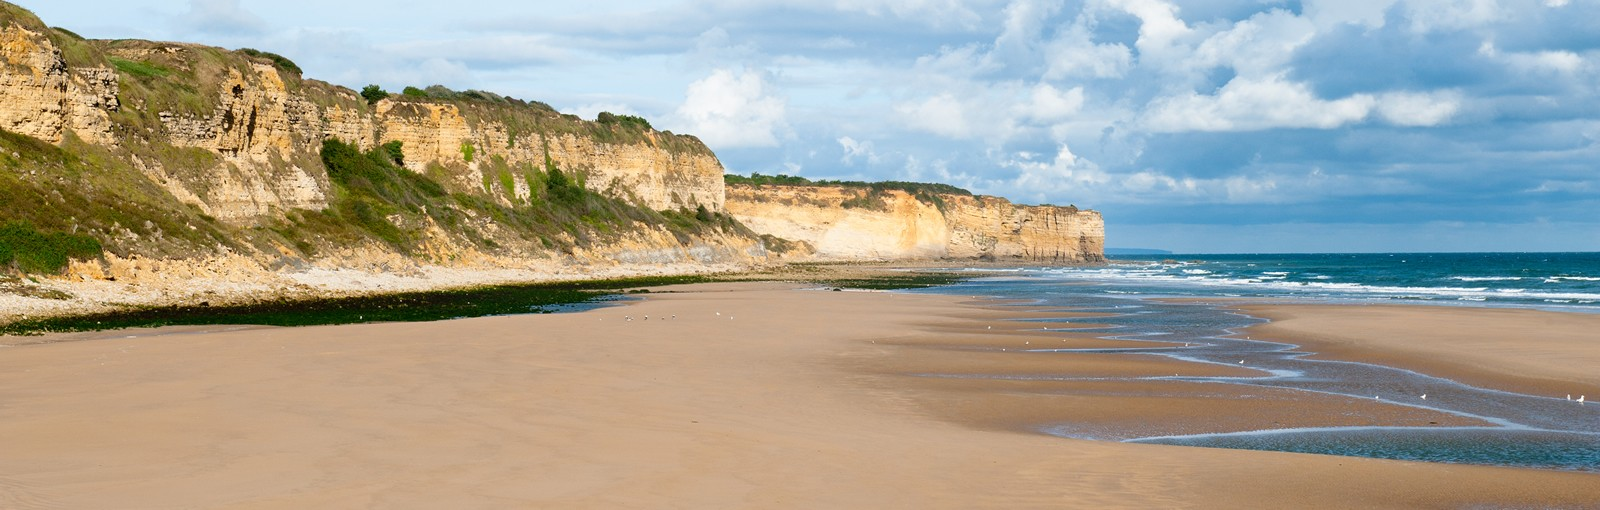 Tours Overnight in Normandy with the Mont-Saint-Michel - Normandy - Multiday tours from Paris